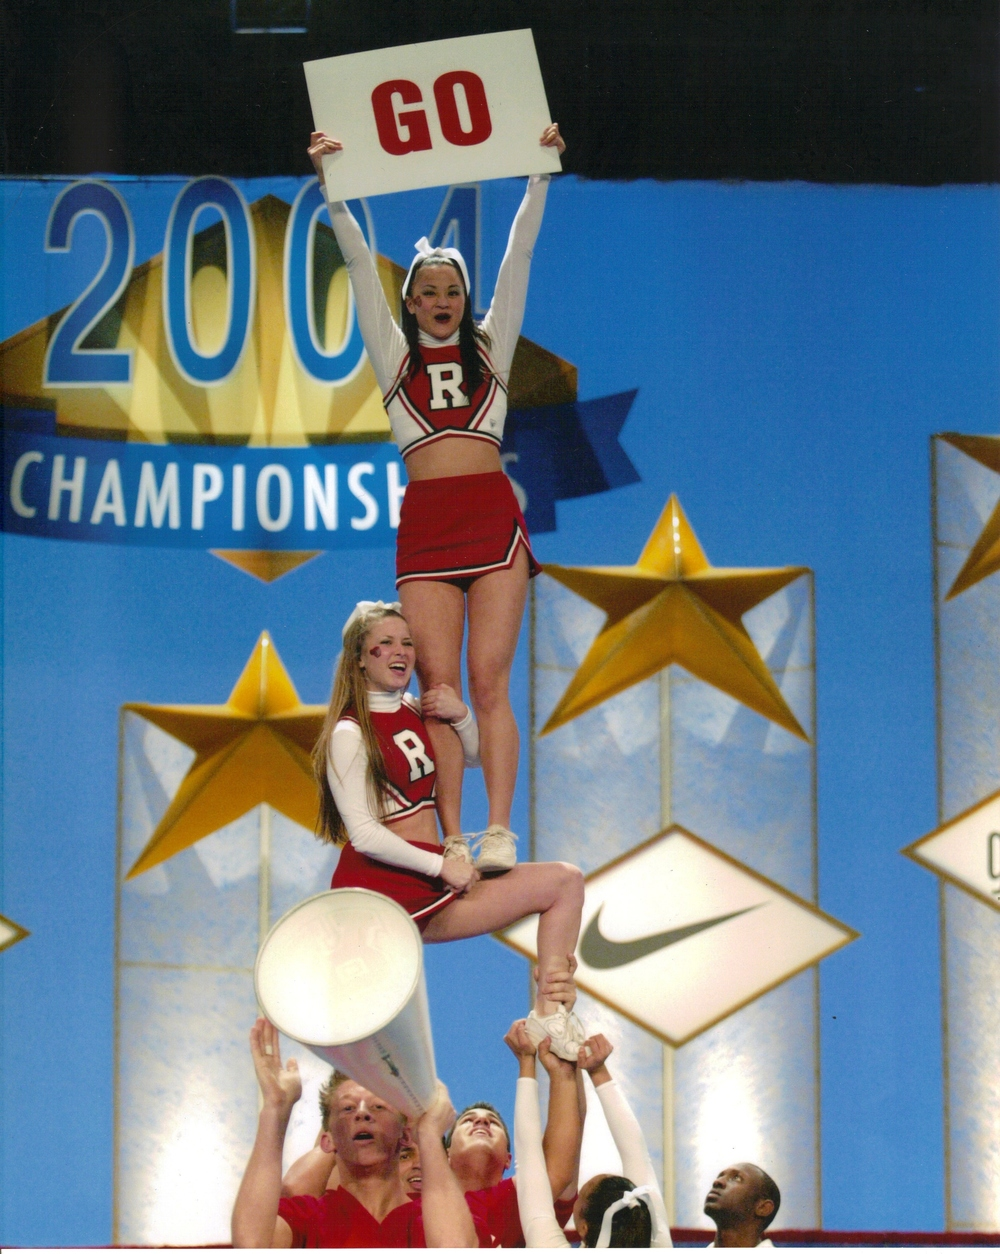 RU Cheer-2004-Natls-Tower.jpg